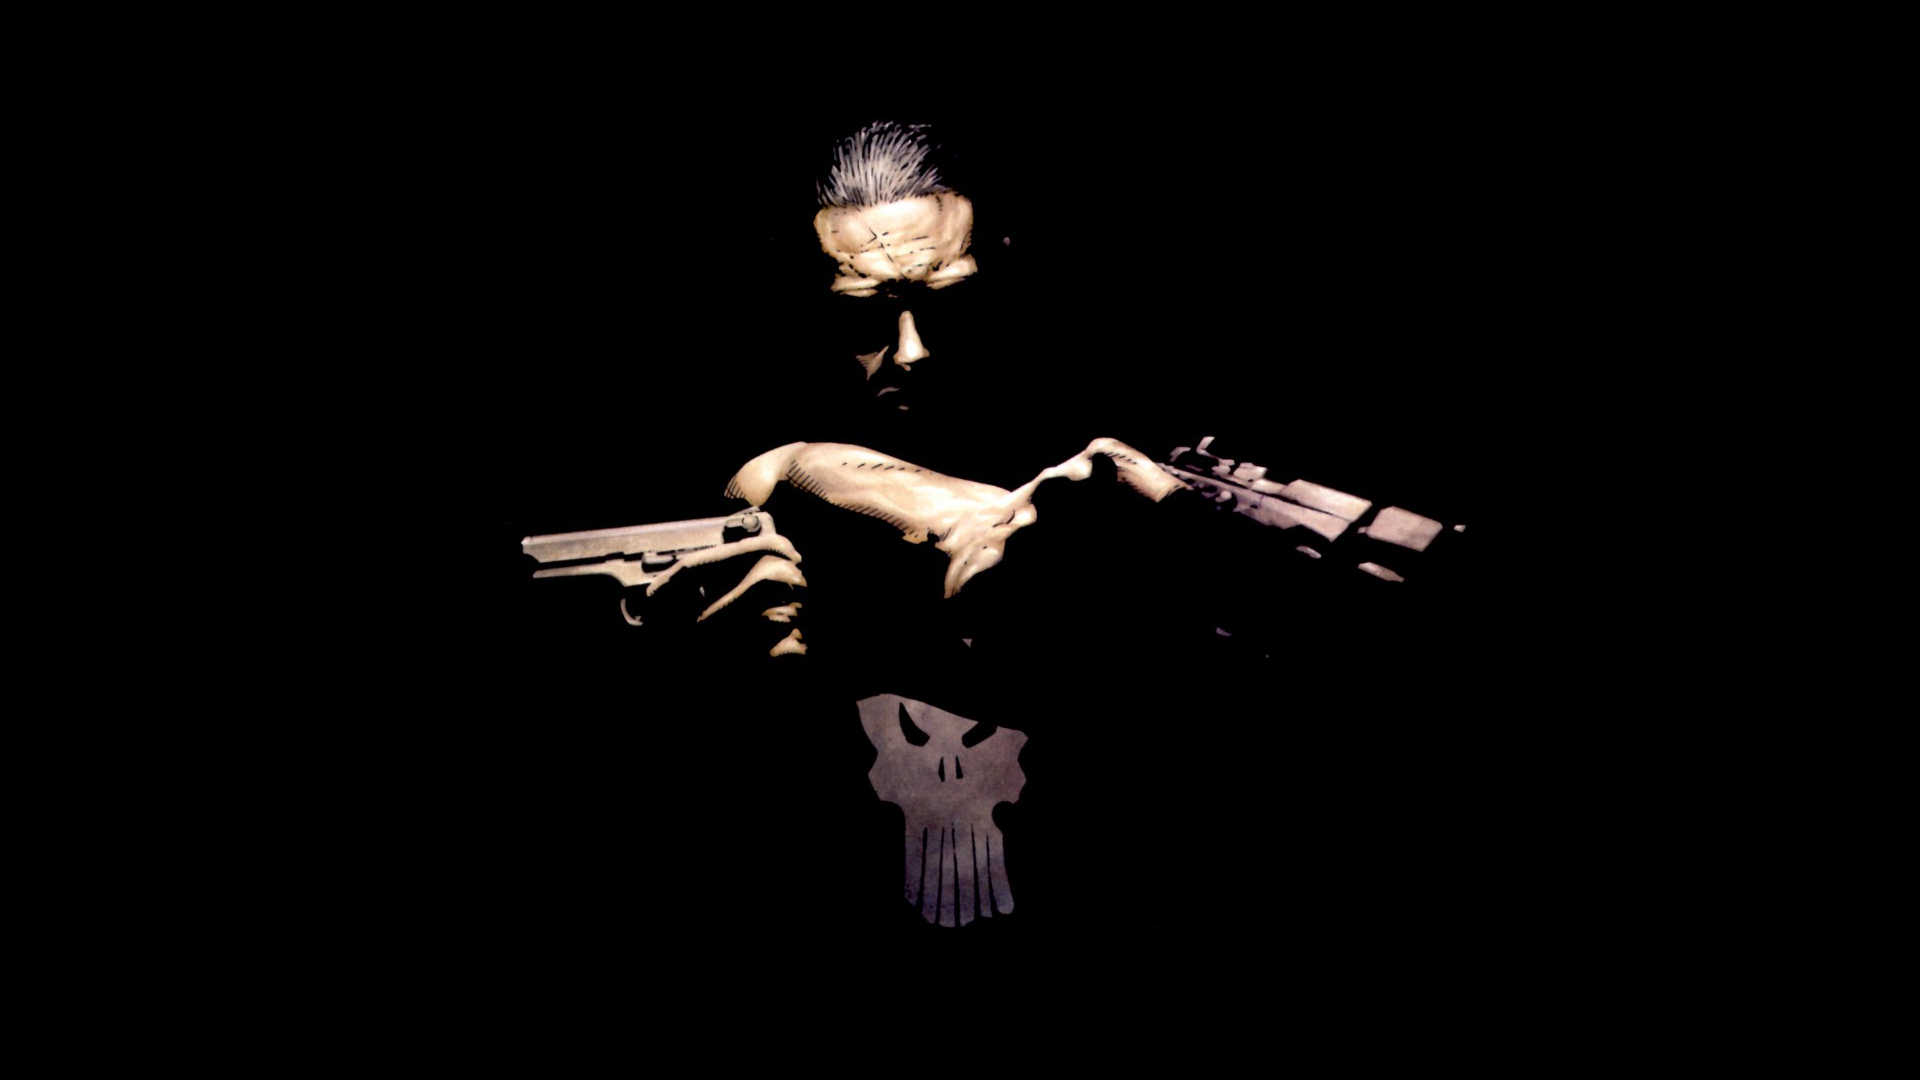 The Punisher Wallpaper 1920x1080 The, Punisher, Marvel, Comics